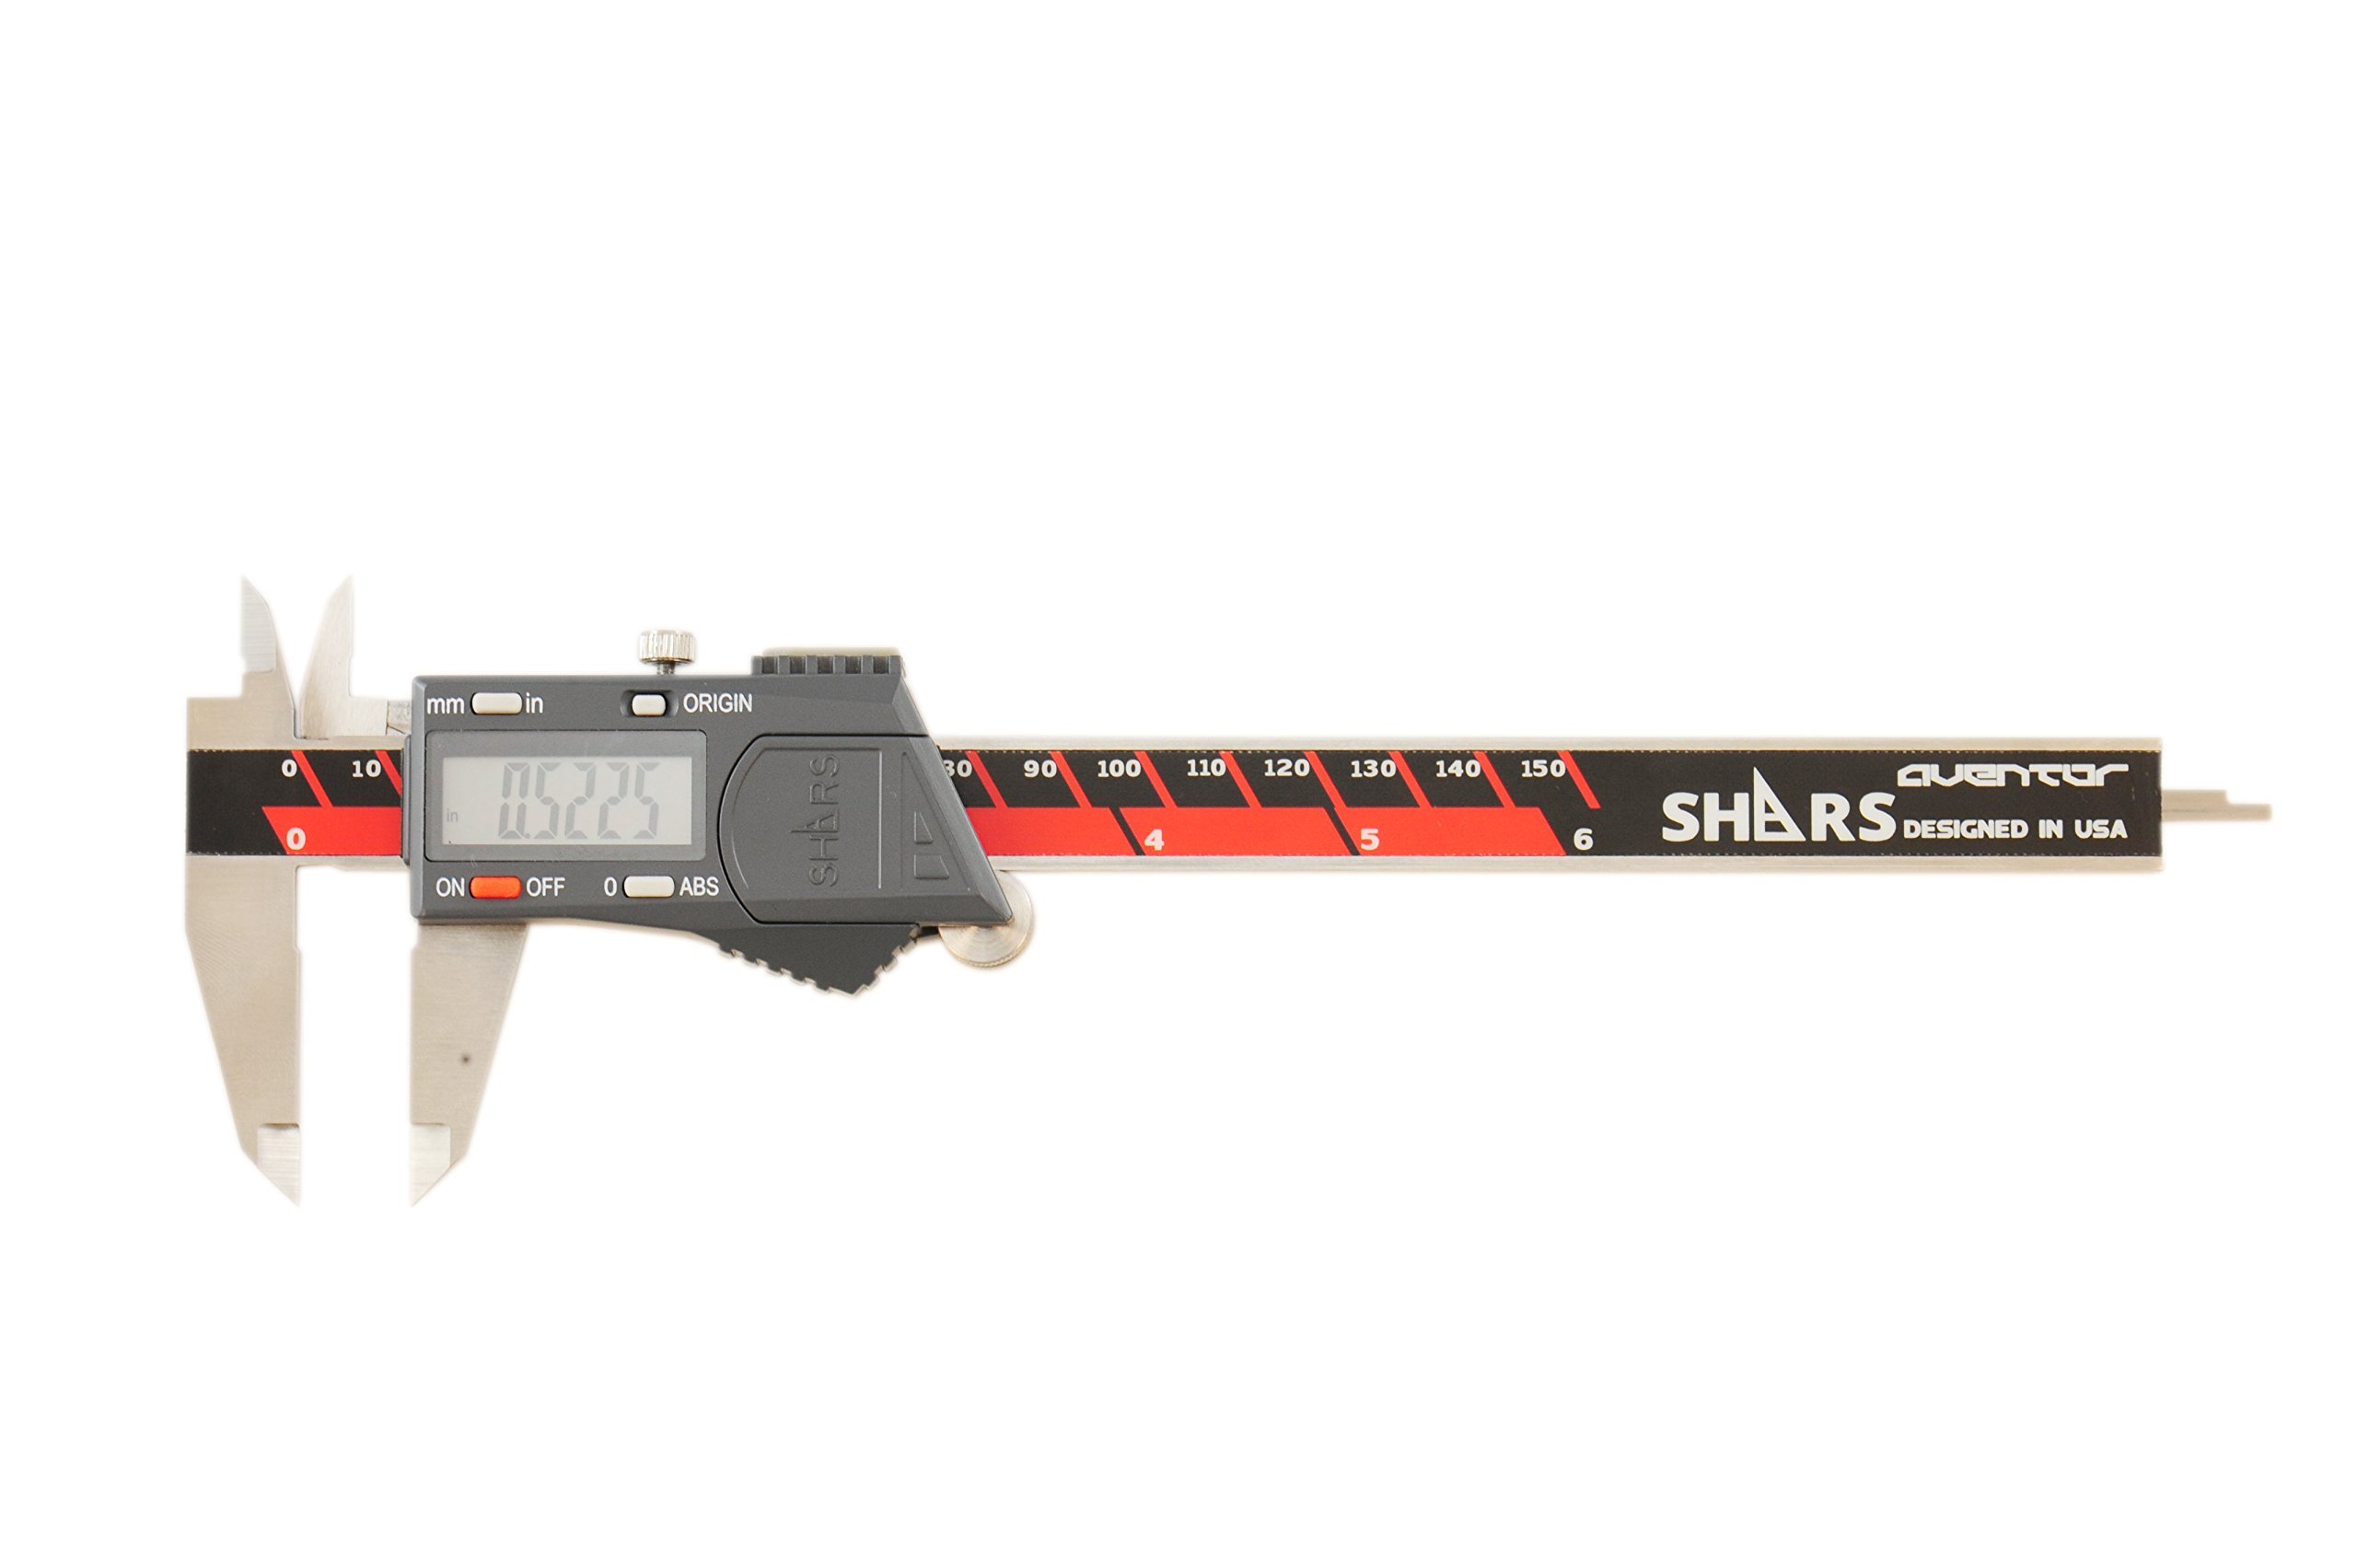 AVENTOR 6'' DPS IP54 ELECTRONIC CALIPER WITH ANAB ACCREDITED ISO17025 CERTIFICATE